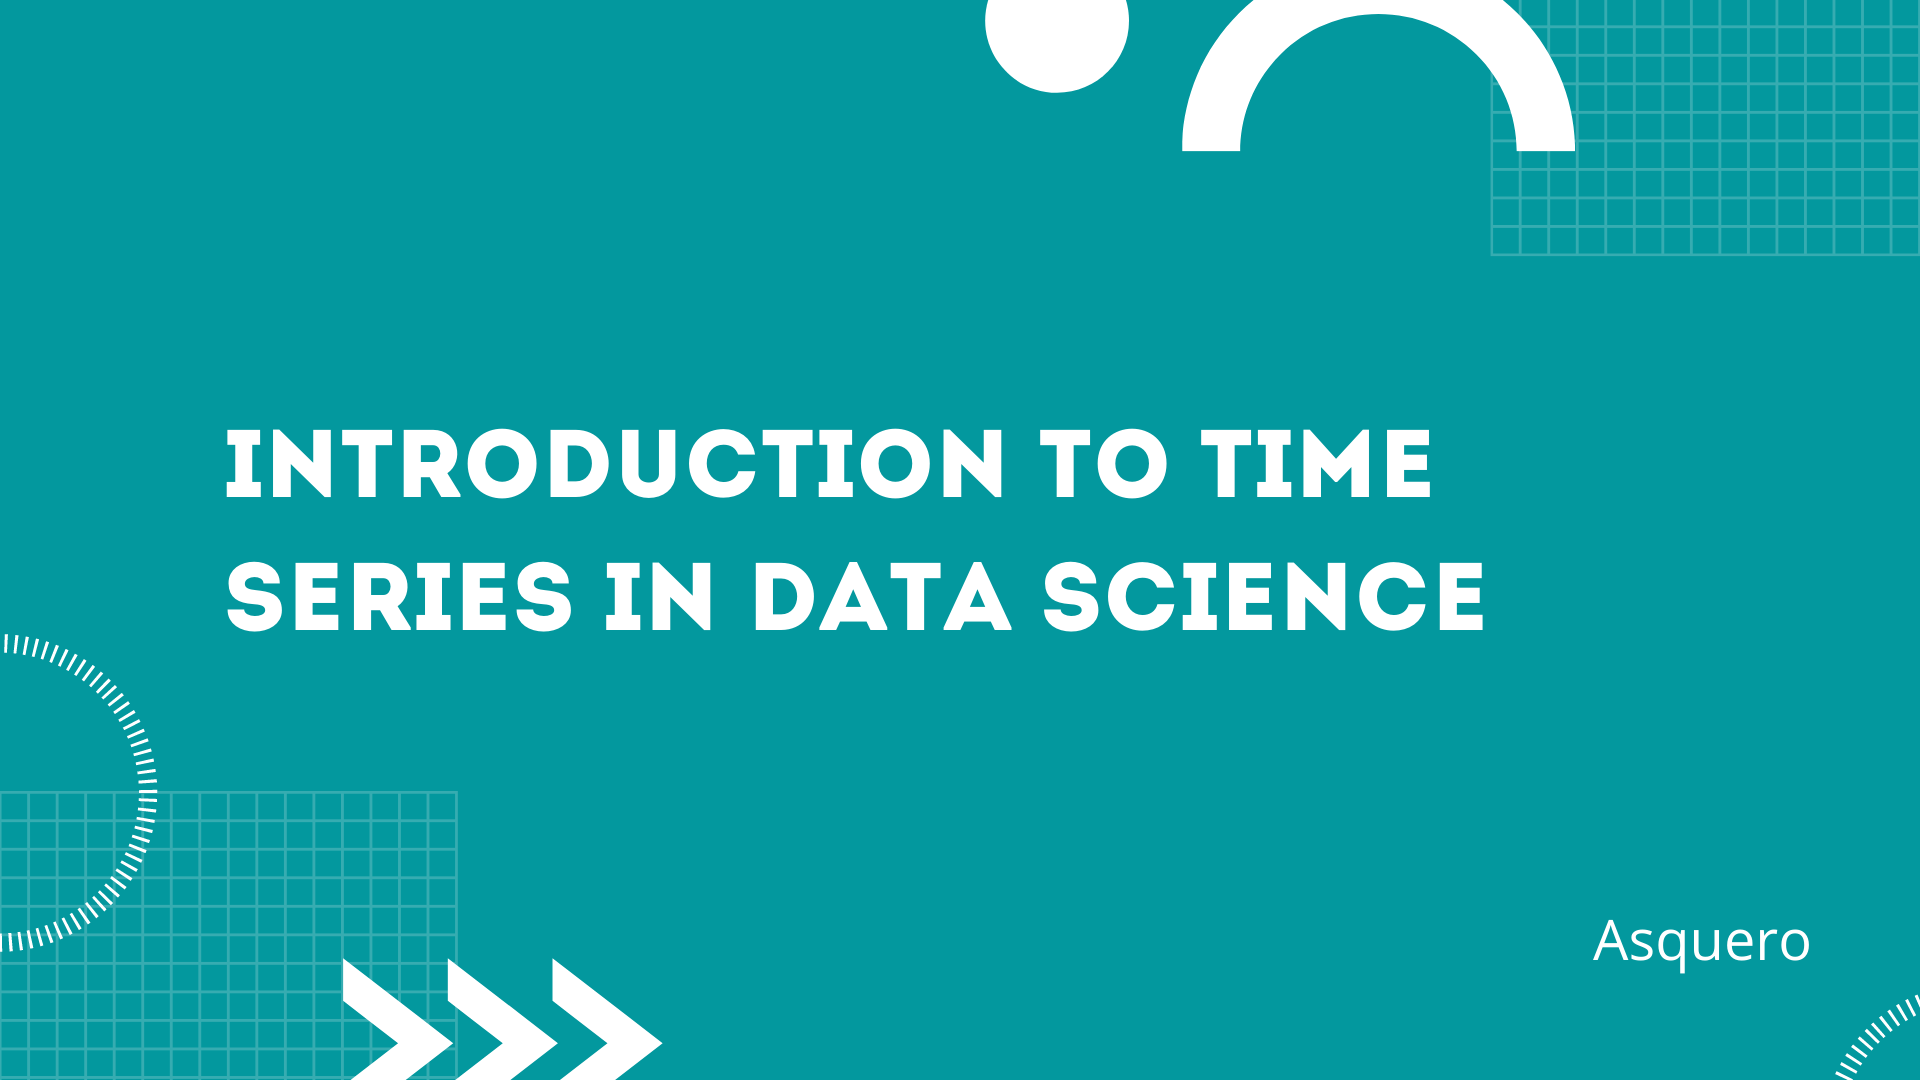 Introduction to Time Series in Data Science